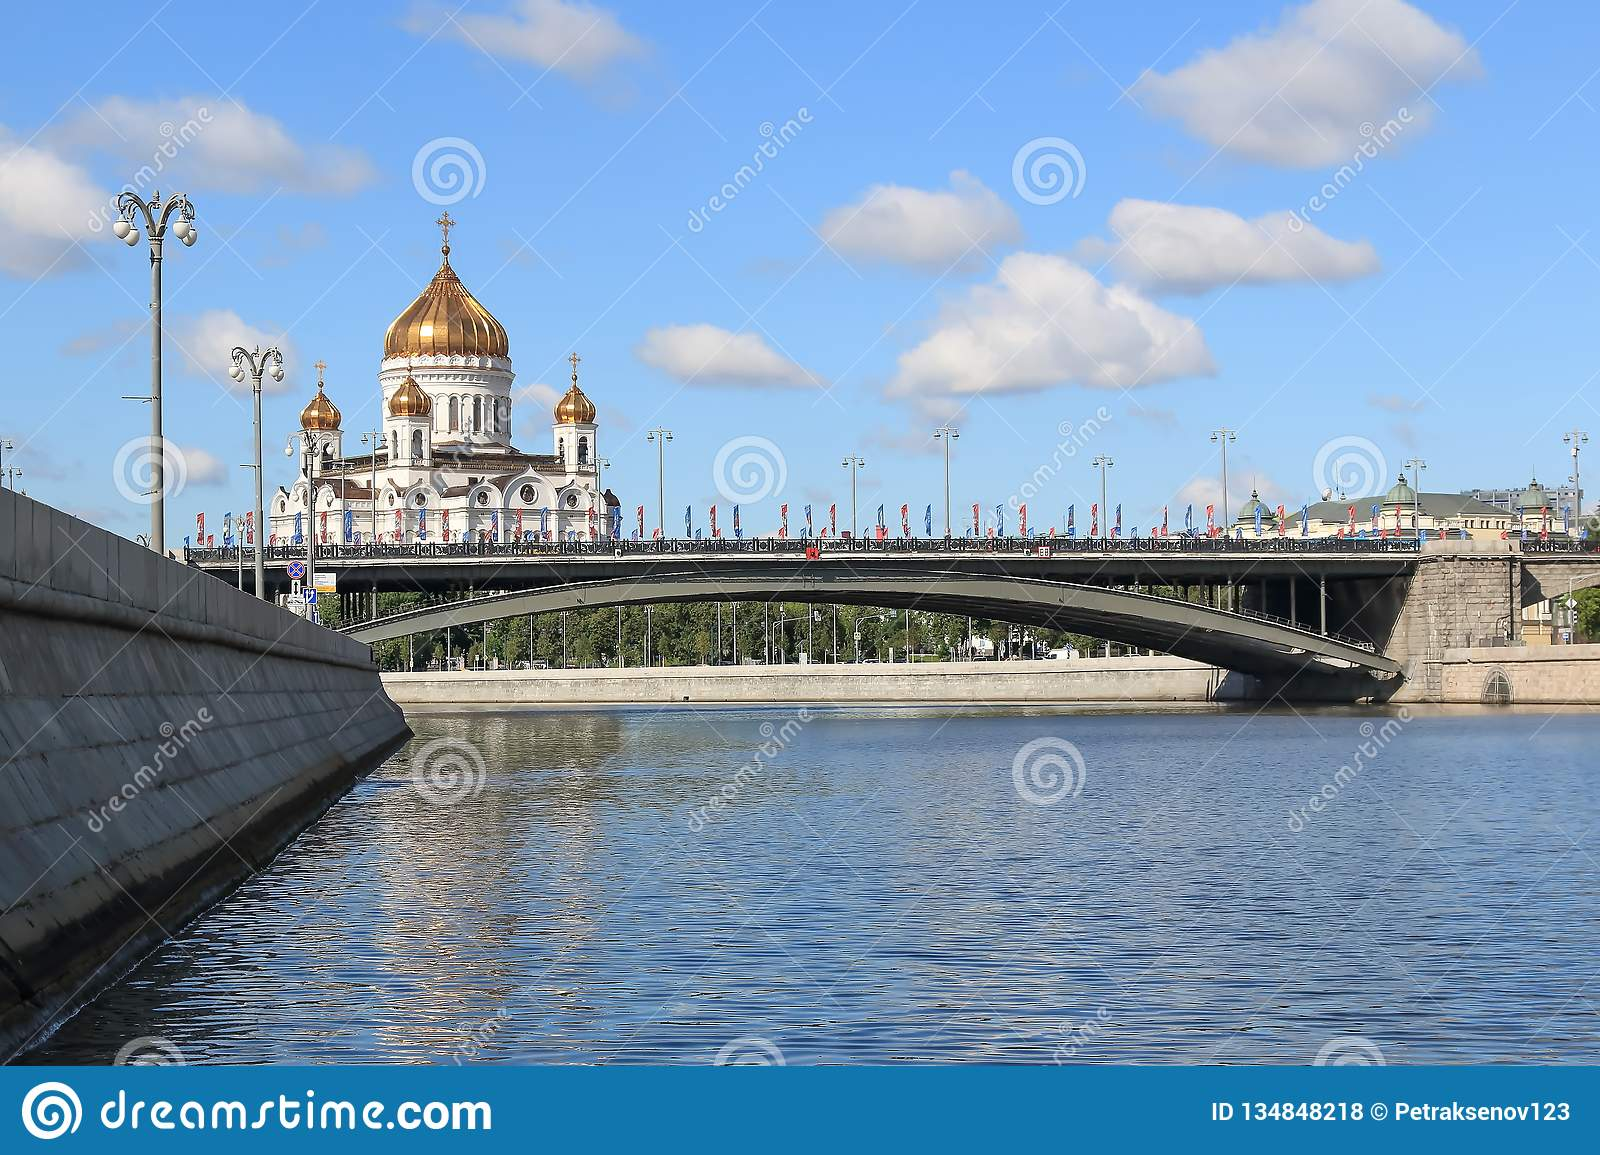 Moscow River, Bolshoy Kamenny Bridge and the Cathedral of Christ the Savior in Moscow